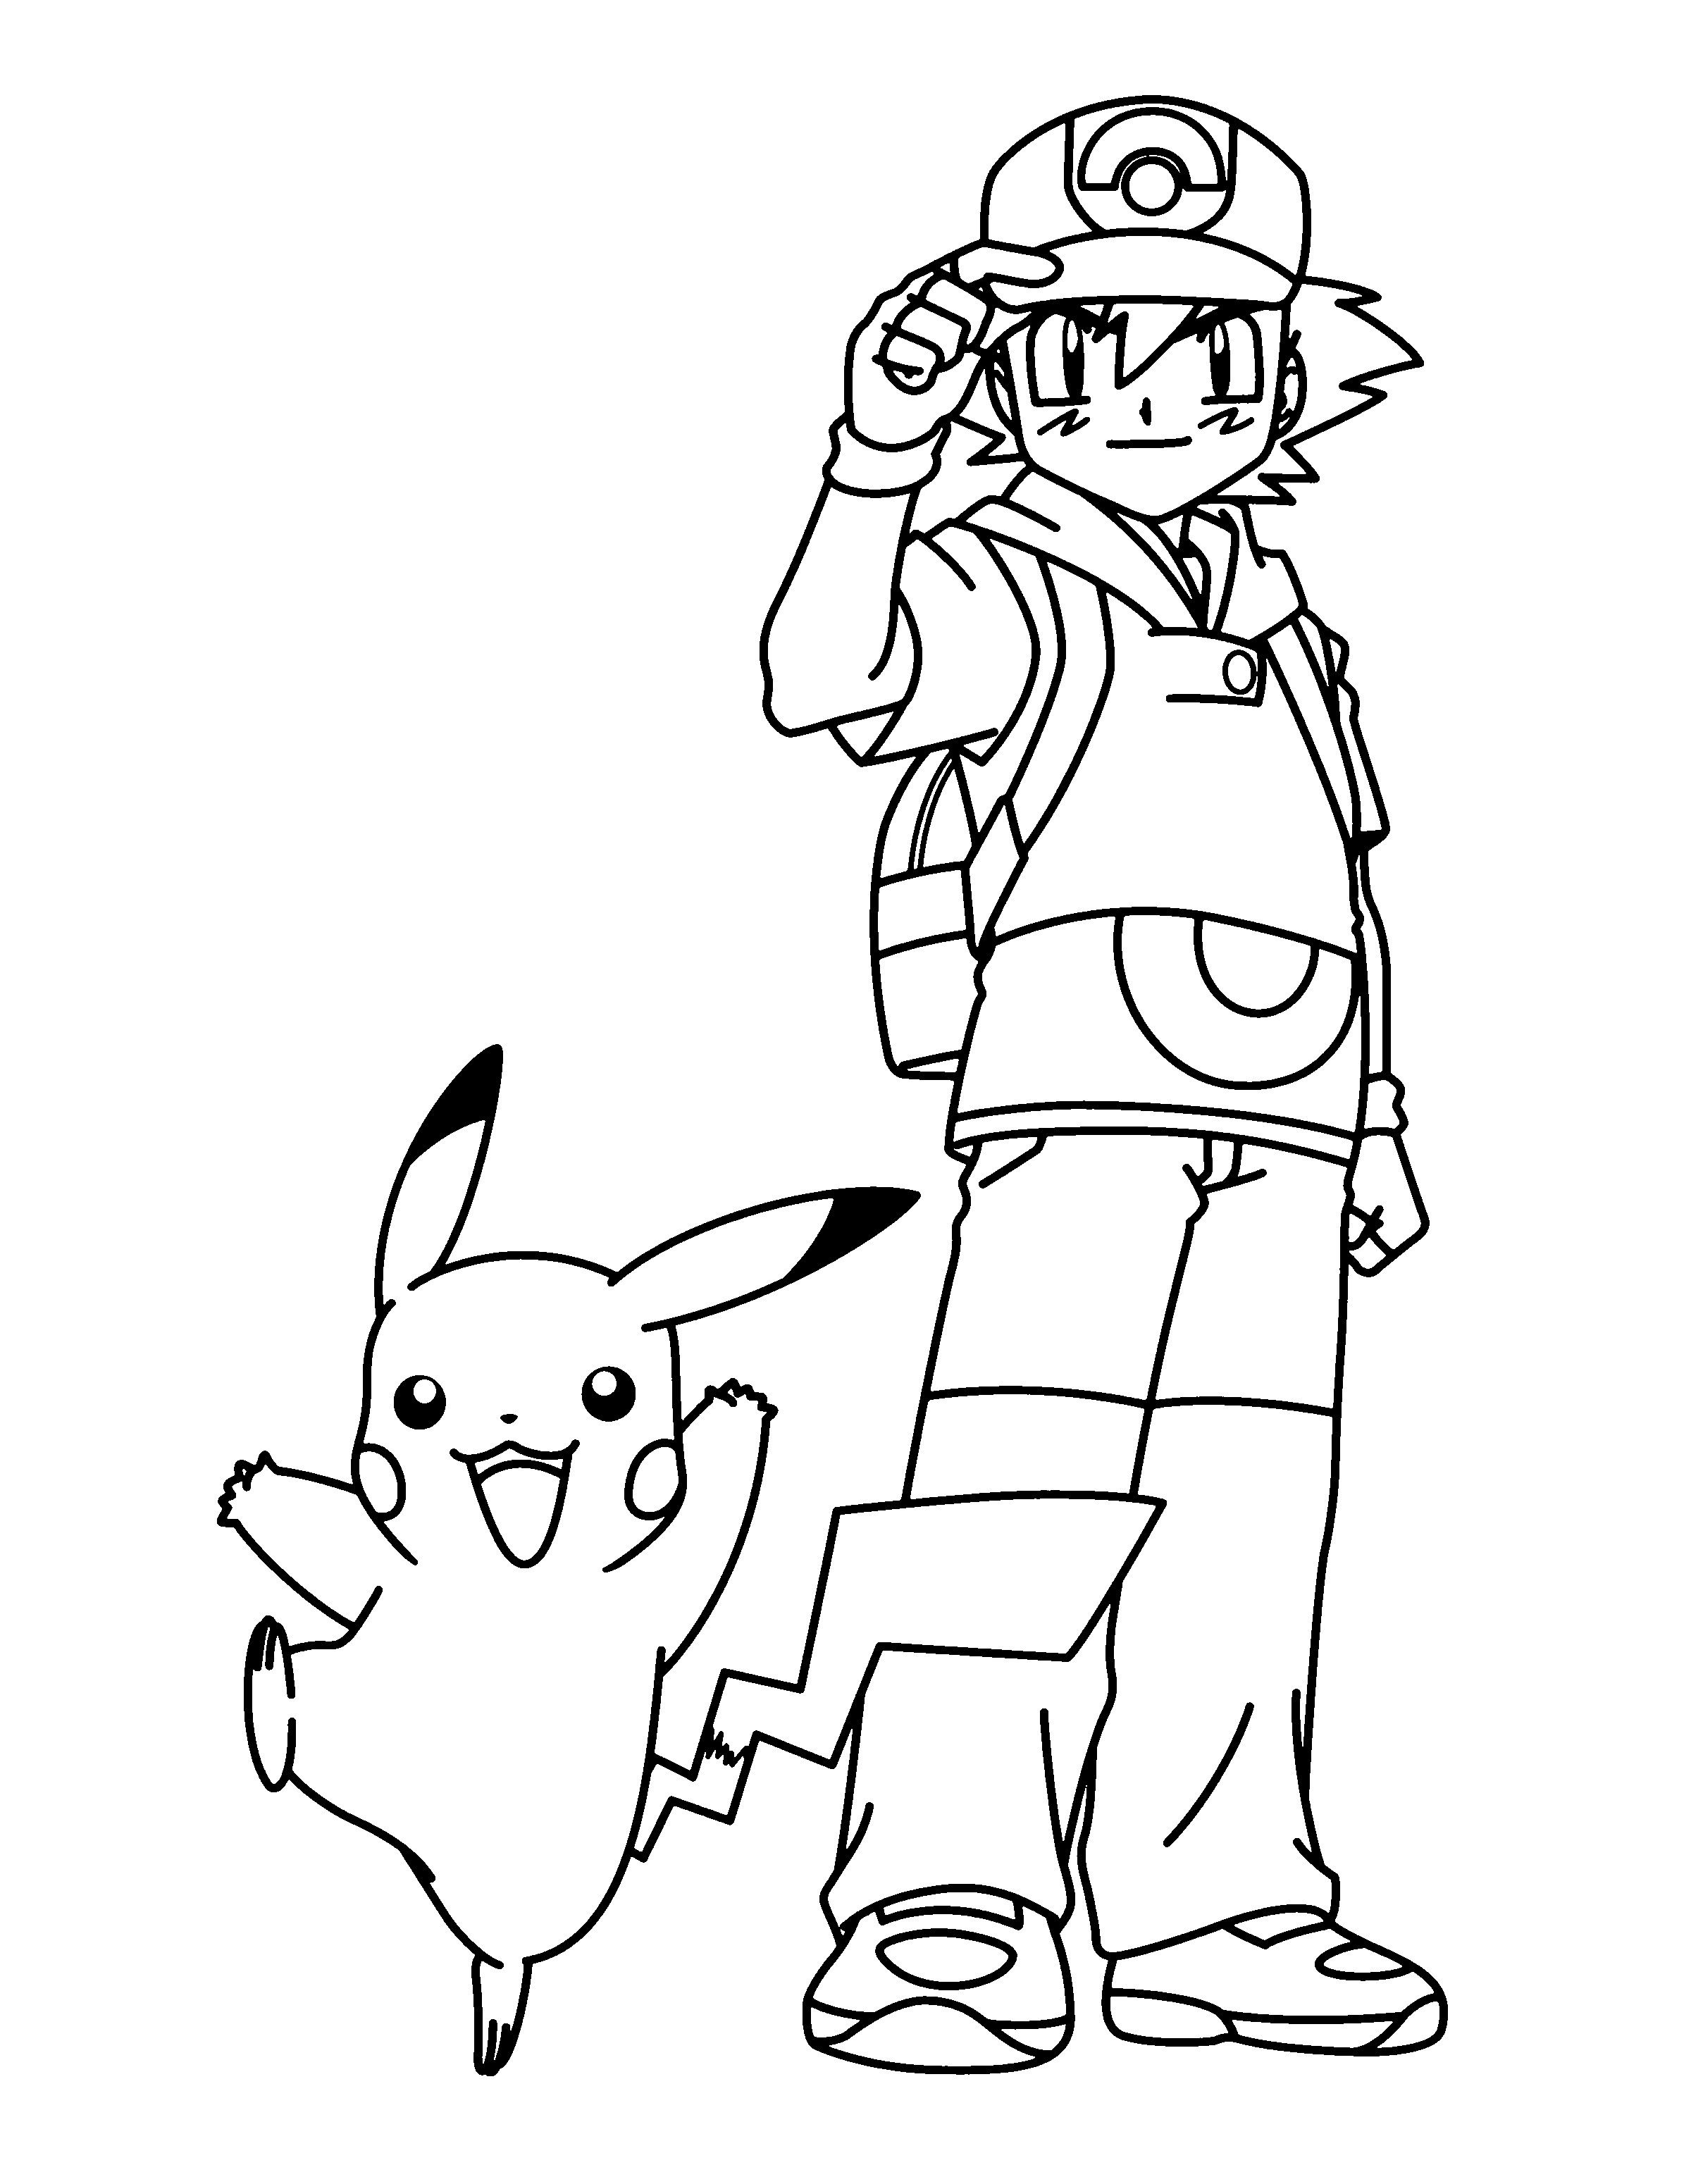 Pokemon ash Ketchum Coloring Page Pokemon coloring